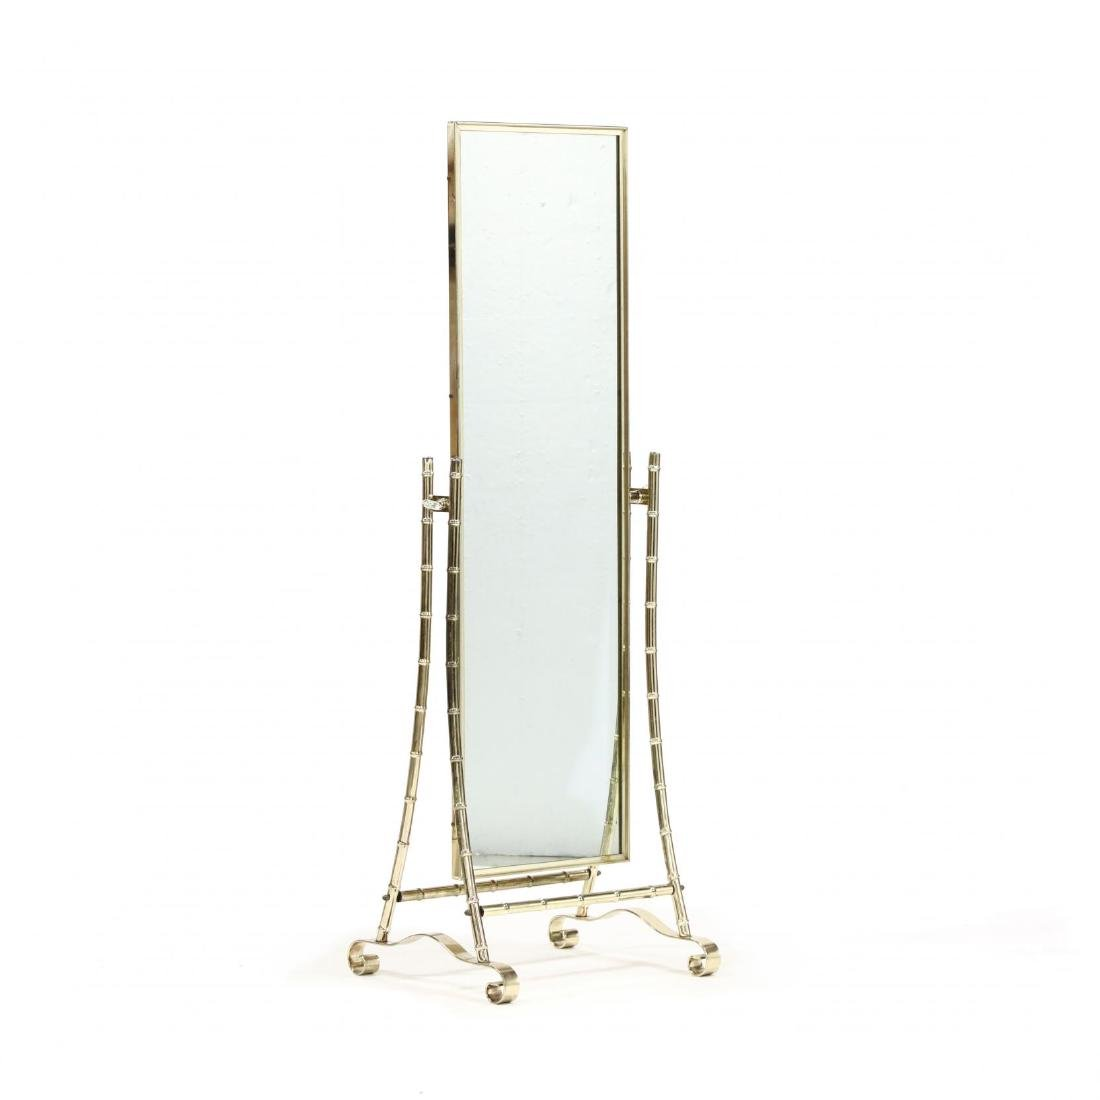 Hollywood Regency Style Cheval Mirror